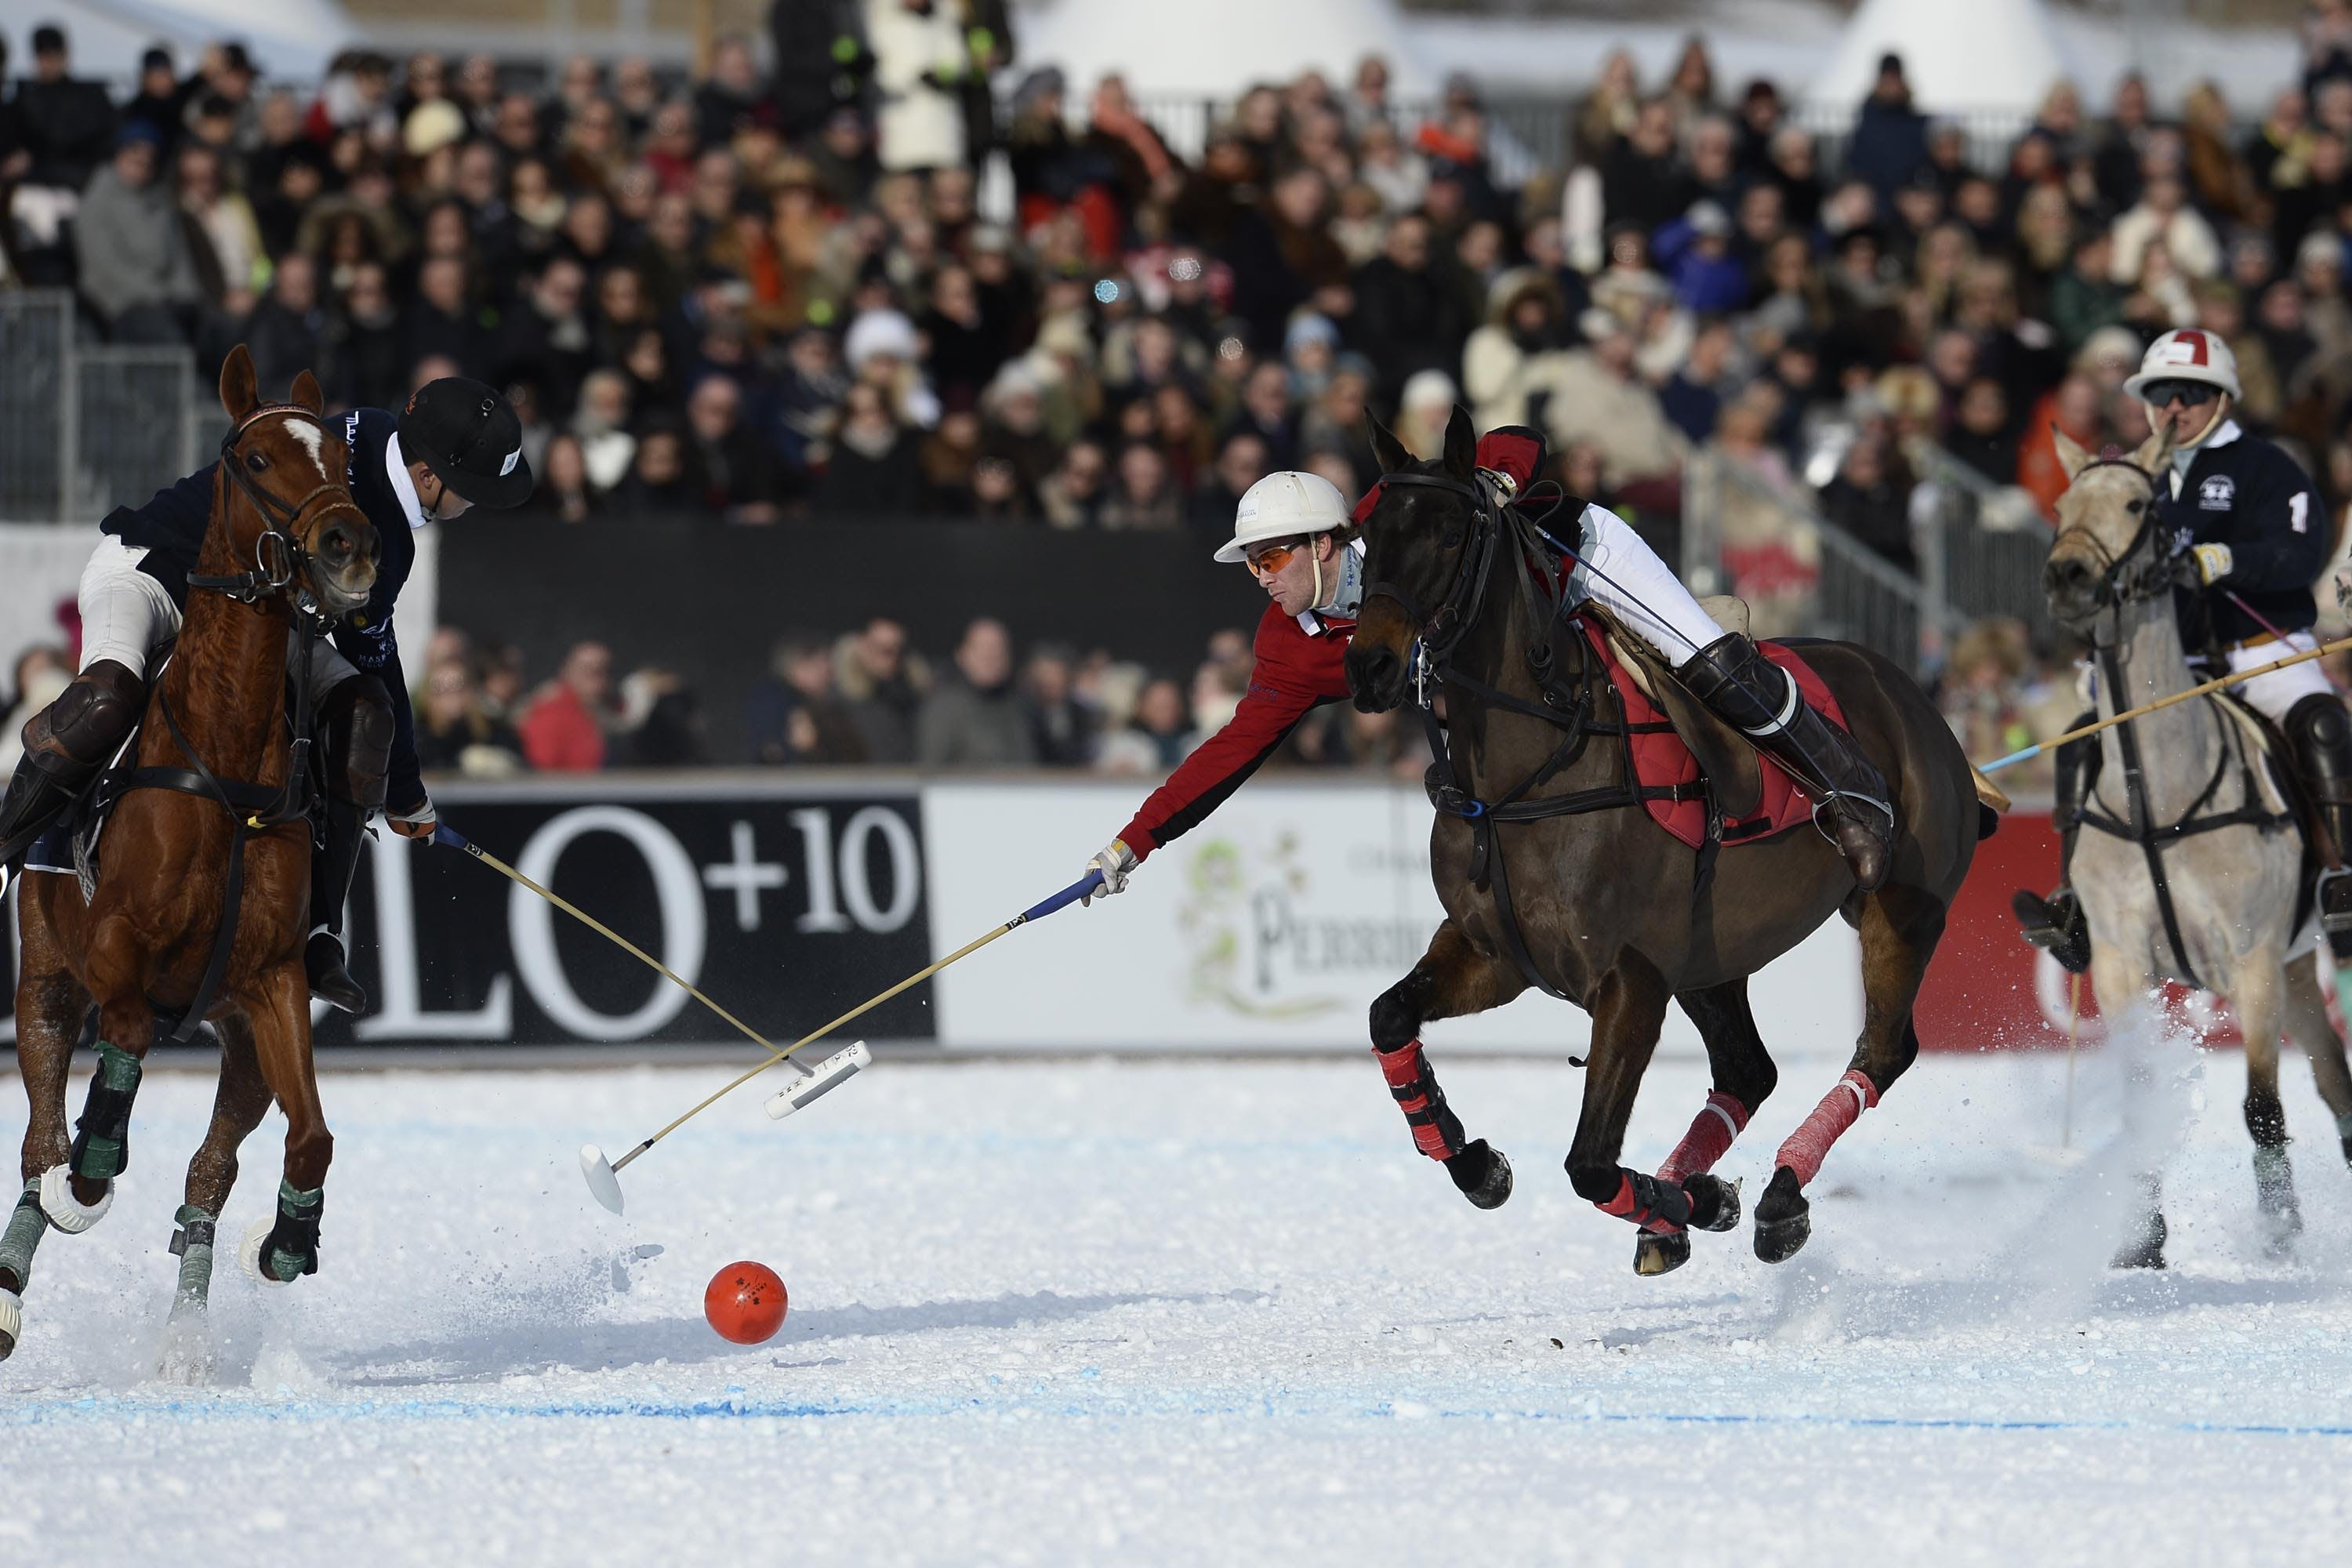 Snow Polo World Cup St. Moritz 25.-27.01.2019